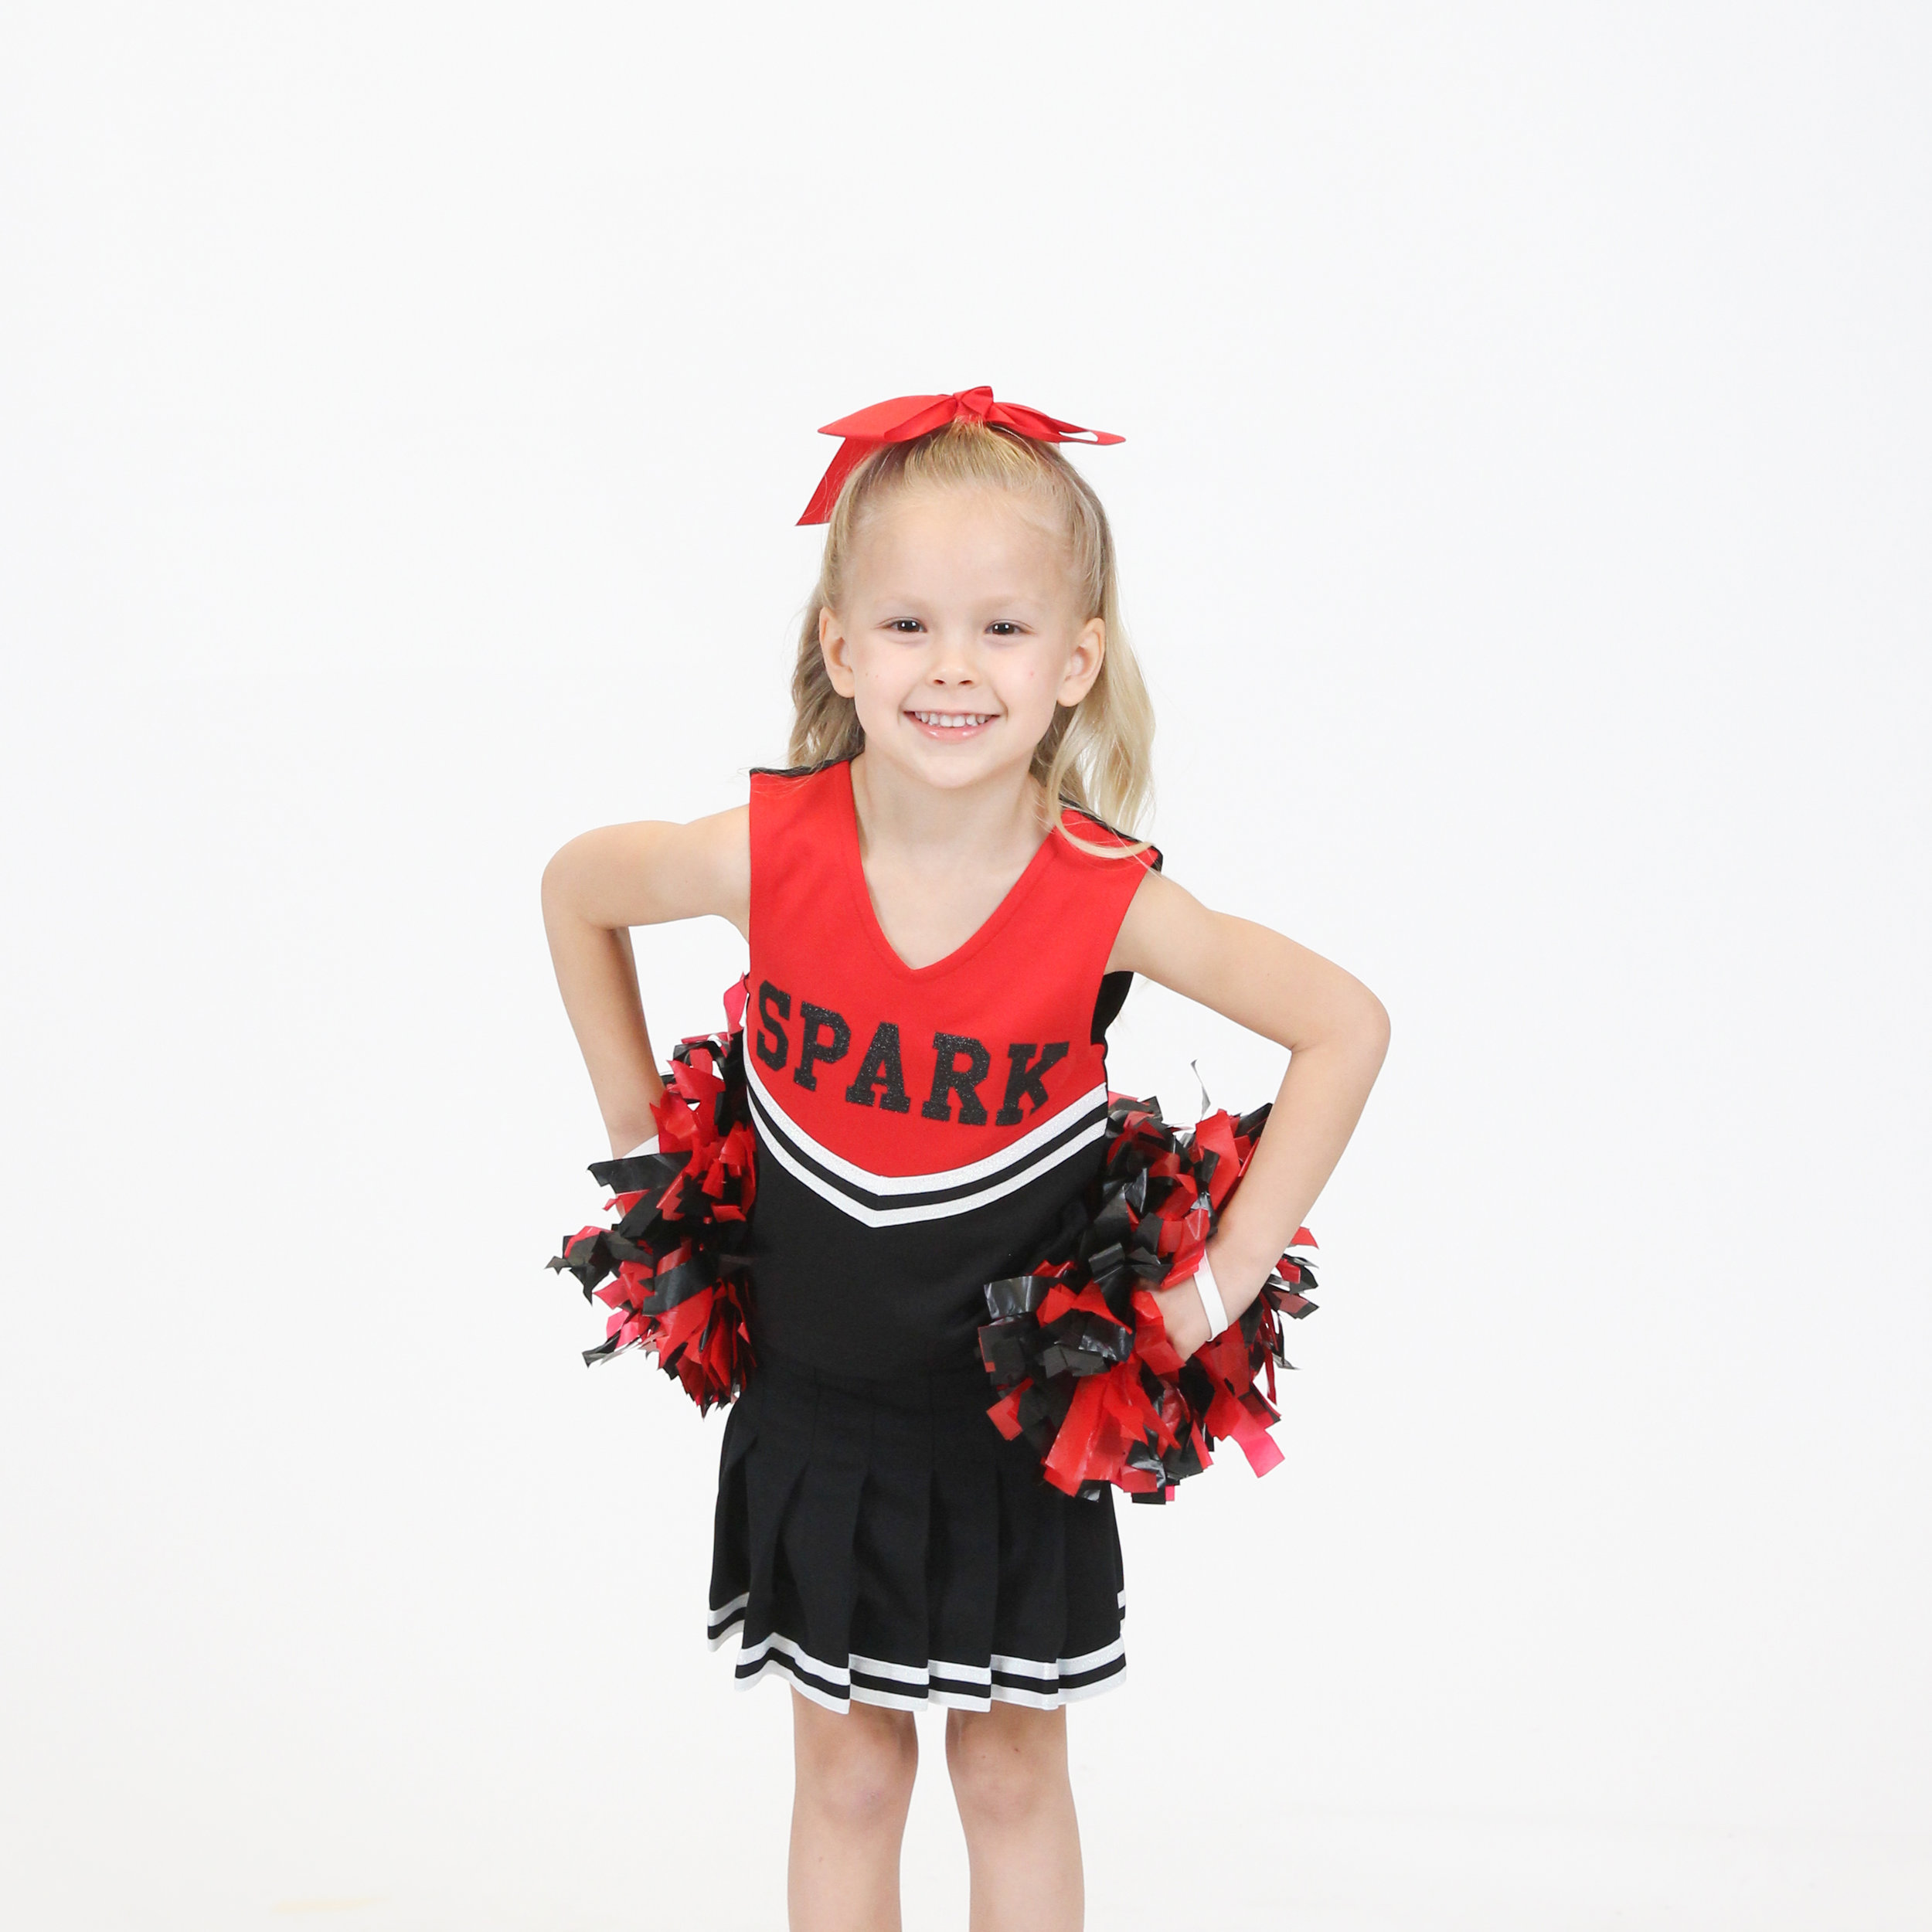 PrimarY Tumbling - Ages 4-6. This is a beginning tumbling class. No prior tumbling experience required. The main focus of this class will be learning fundamental tumbling skills while building strength.